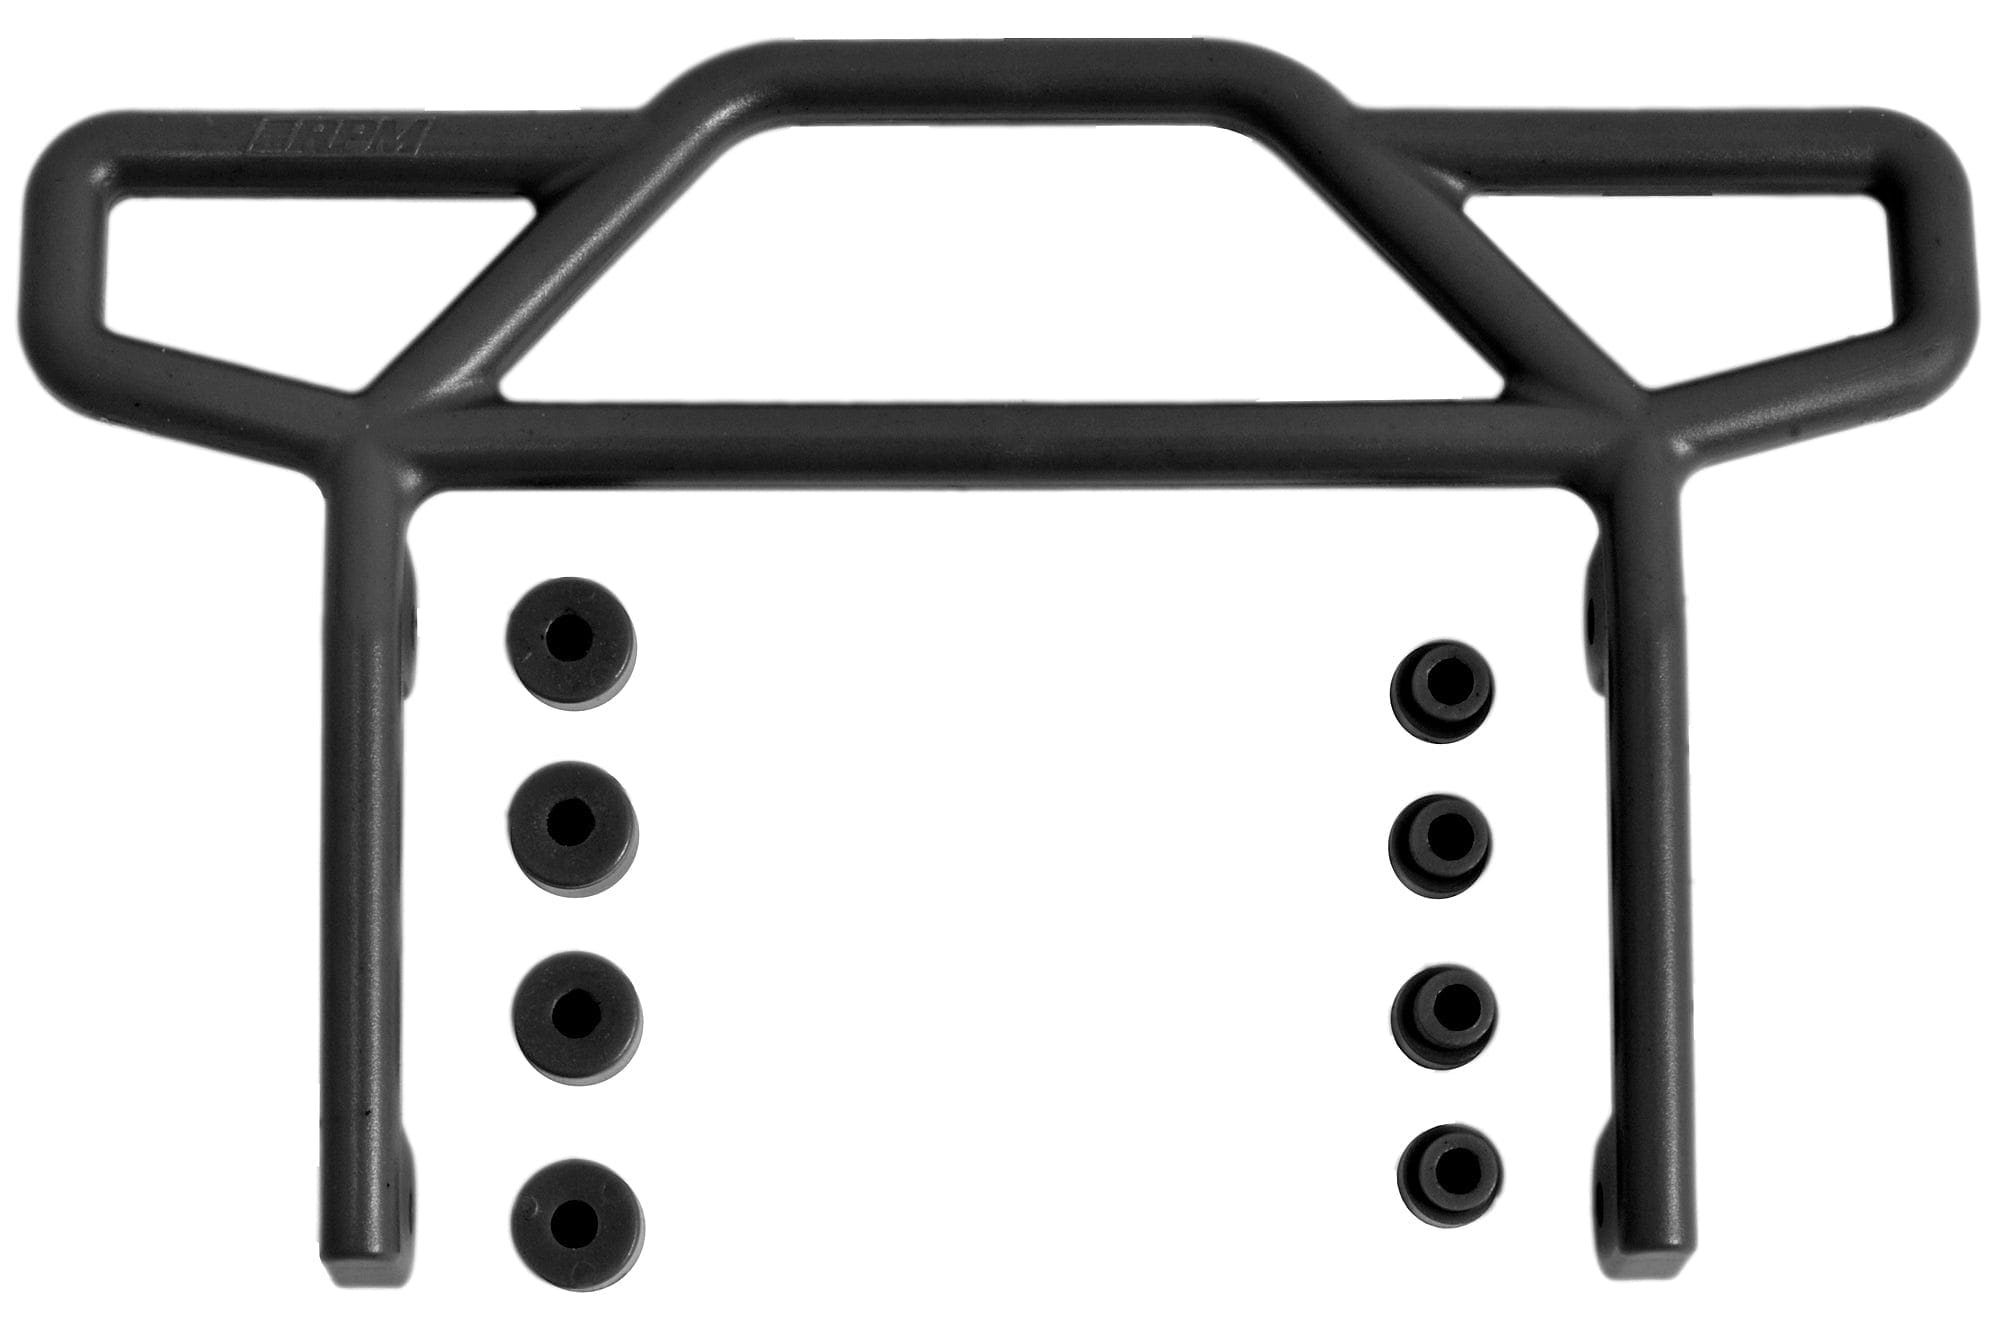 RPM 70812   Rear Bumper, Black, for Traxxas Electric Rustler